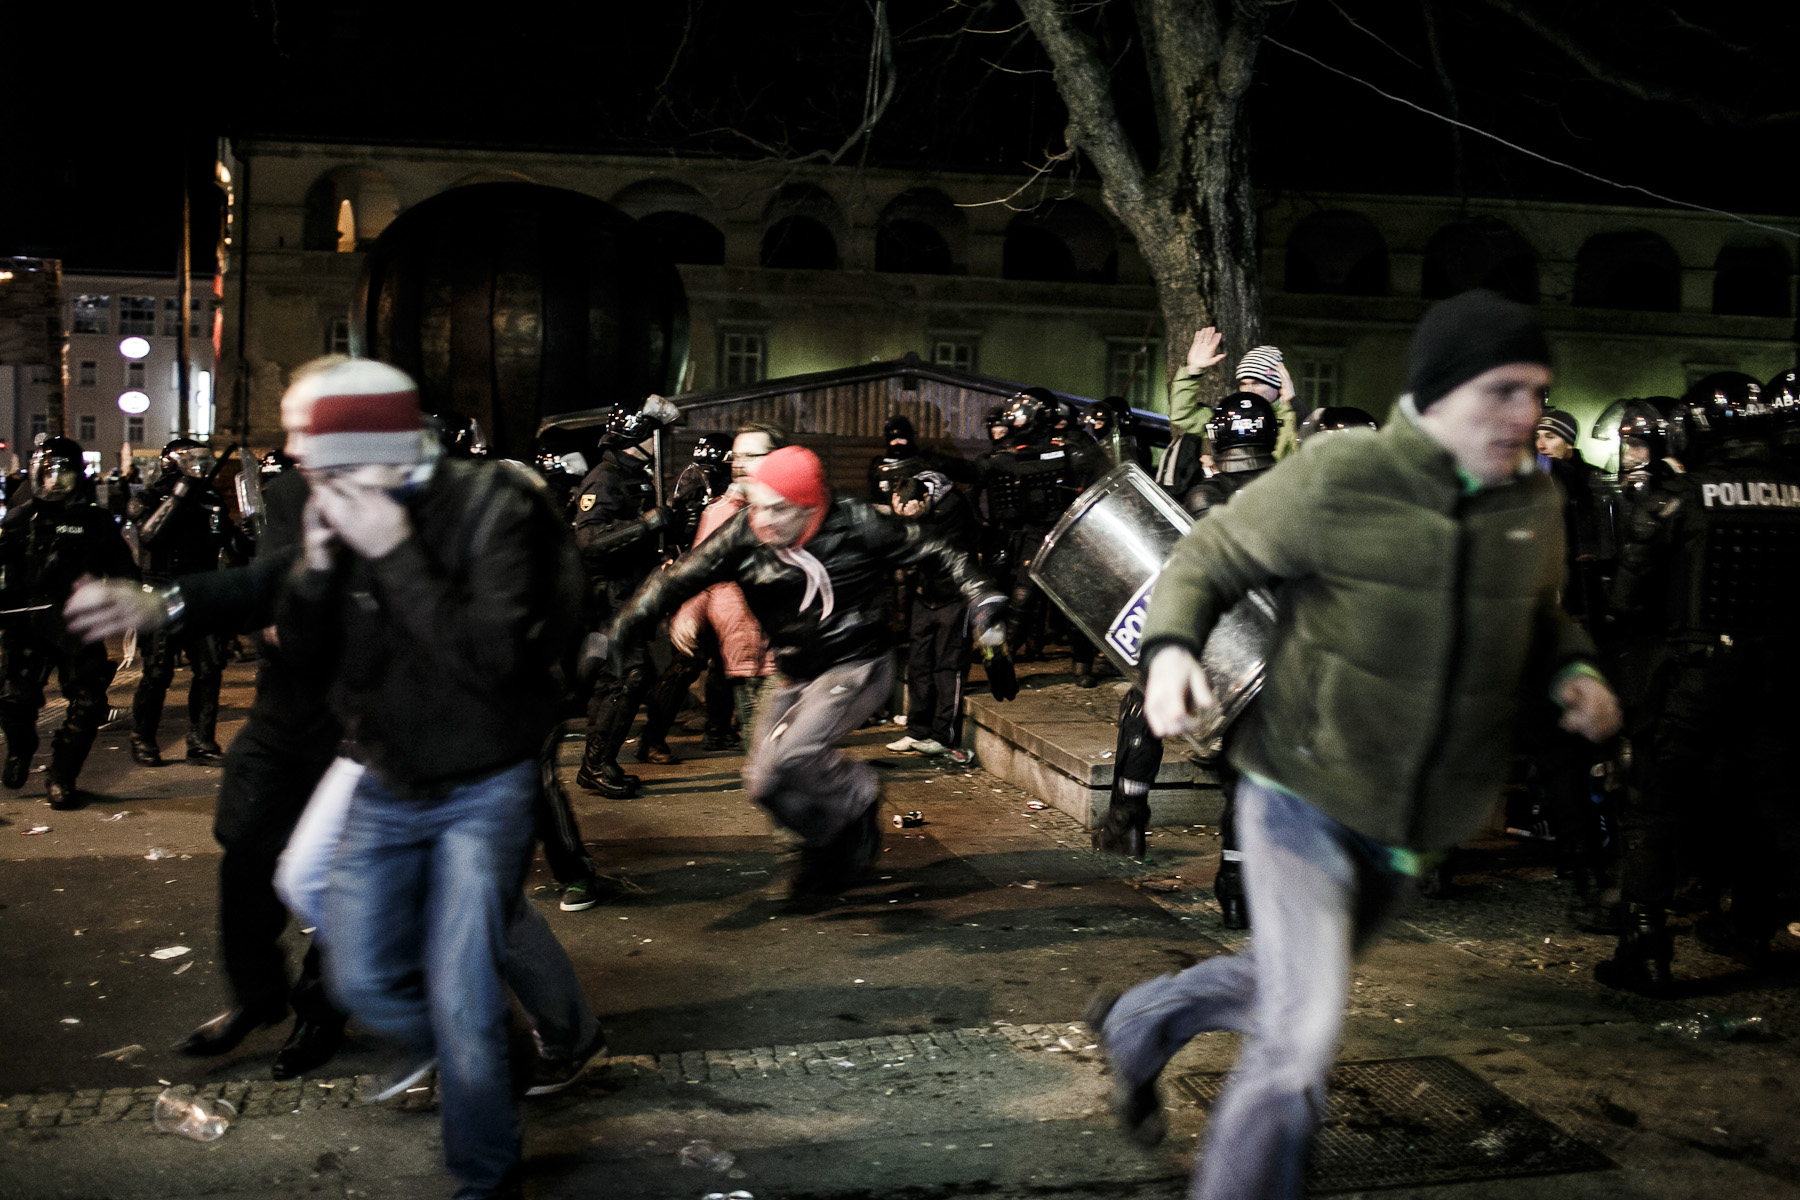 Protesters run as cobblestones and pyrotechnics start flying during protests against the mayor of Maribor Franc Kangler in Maribor, Slovenia, on December 3, 2012.